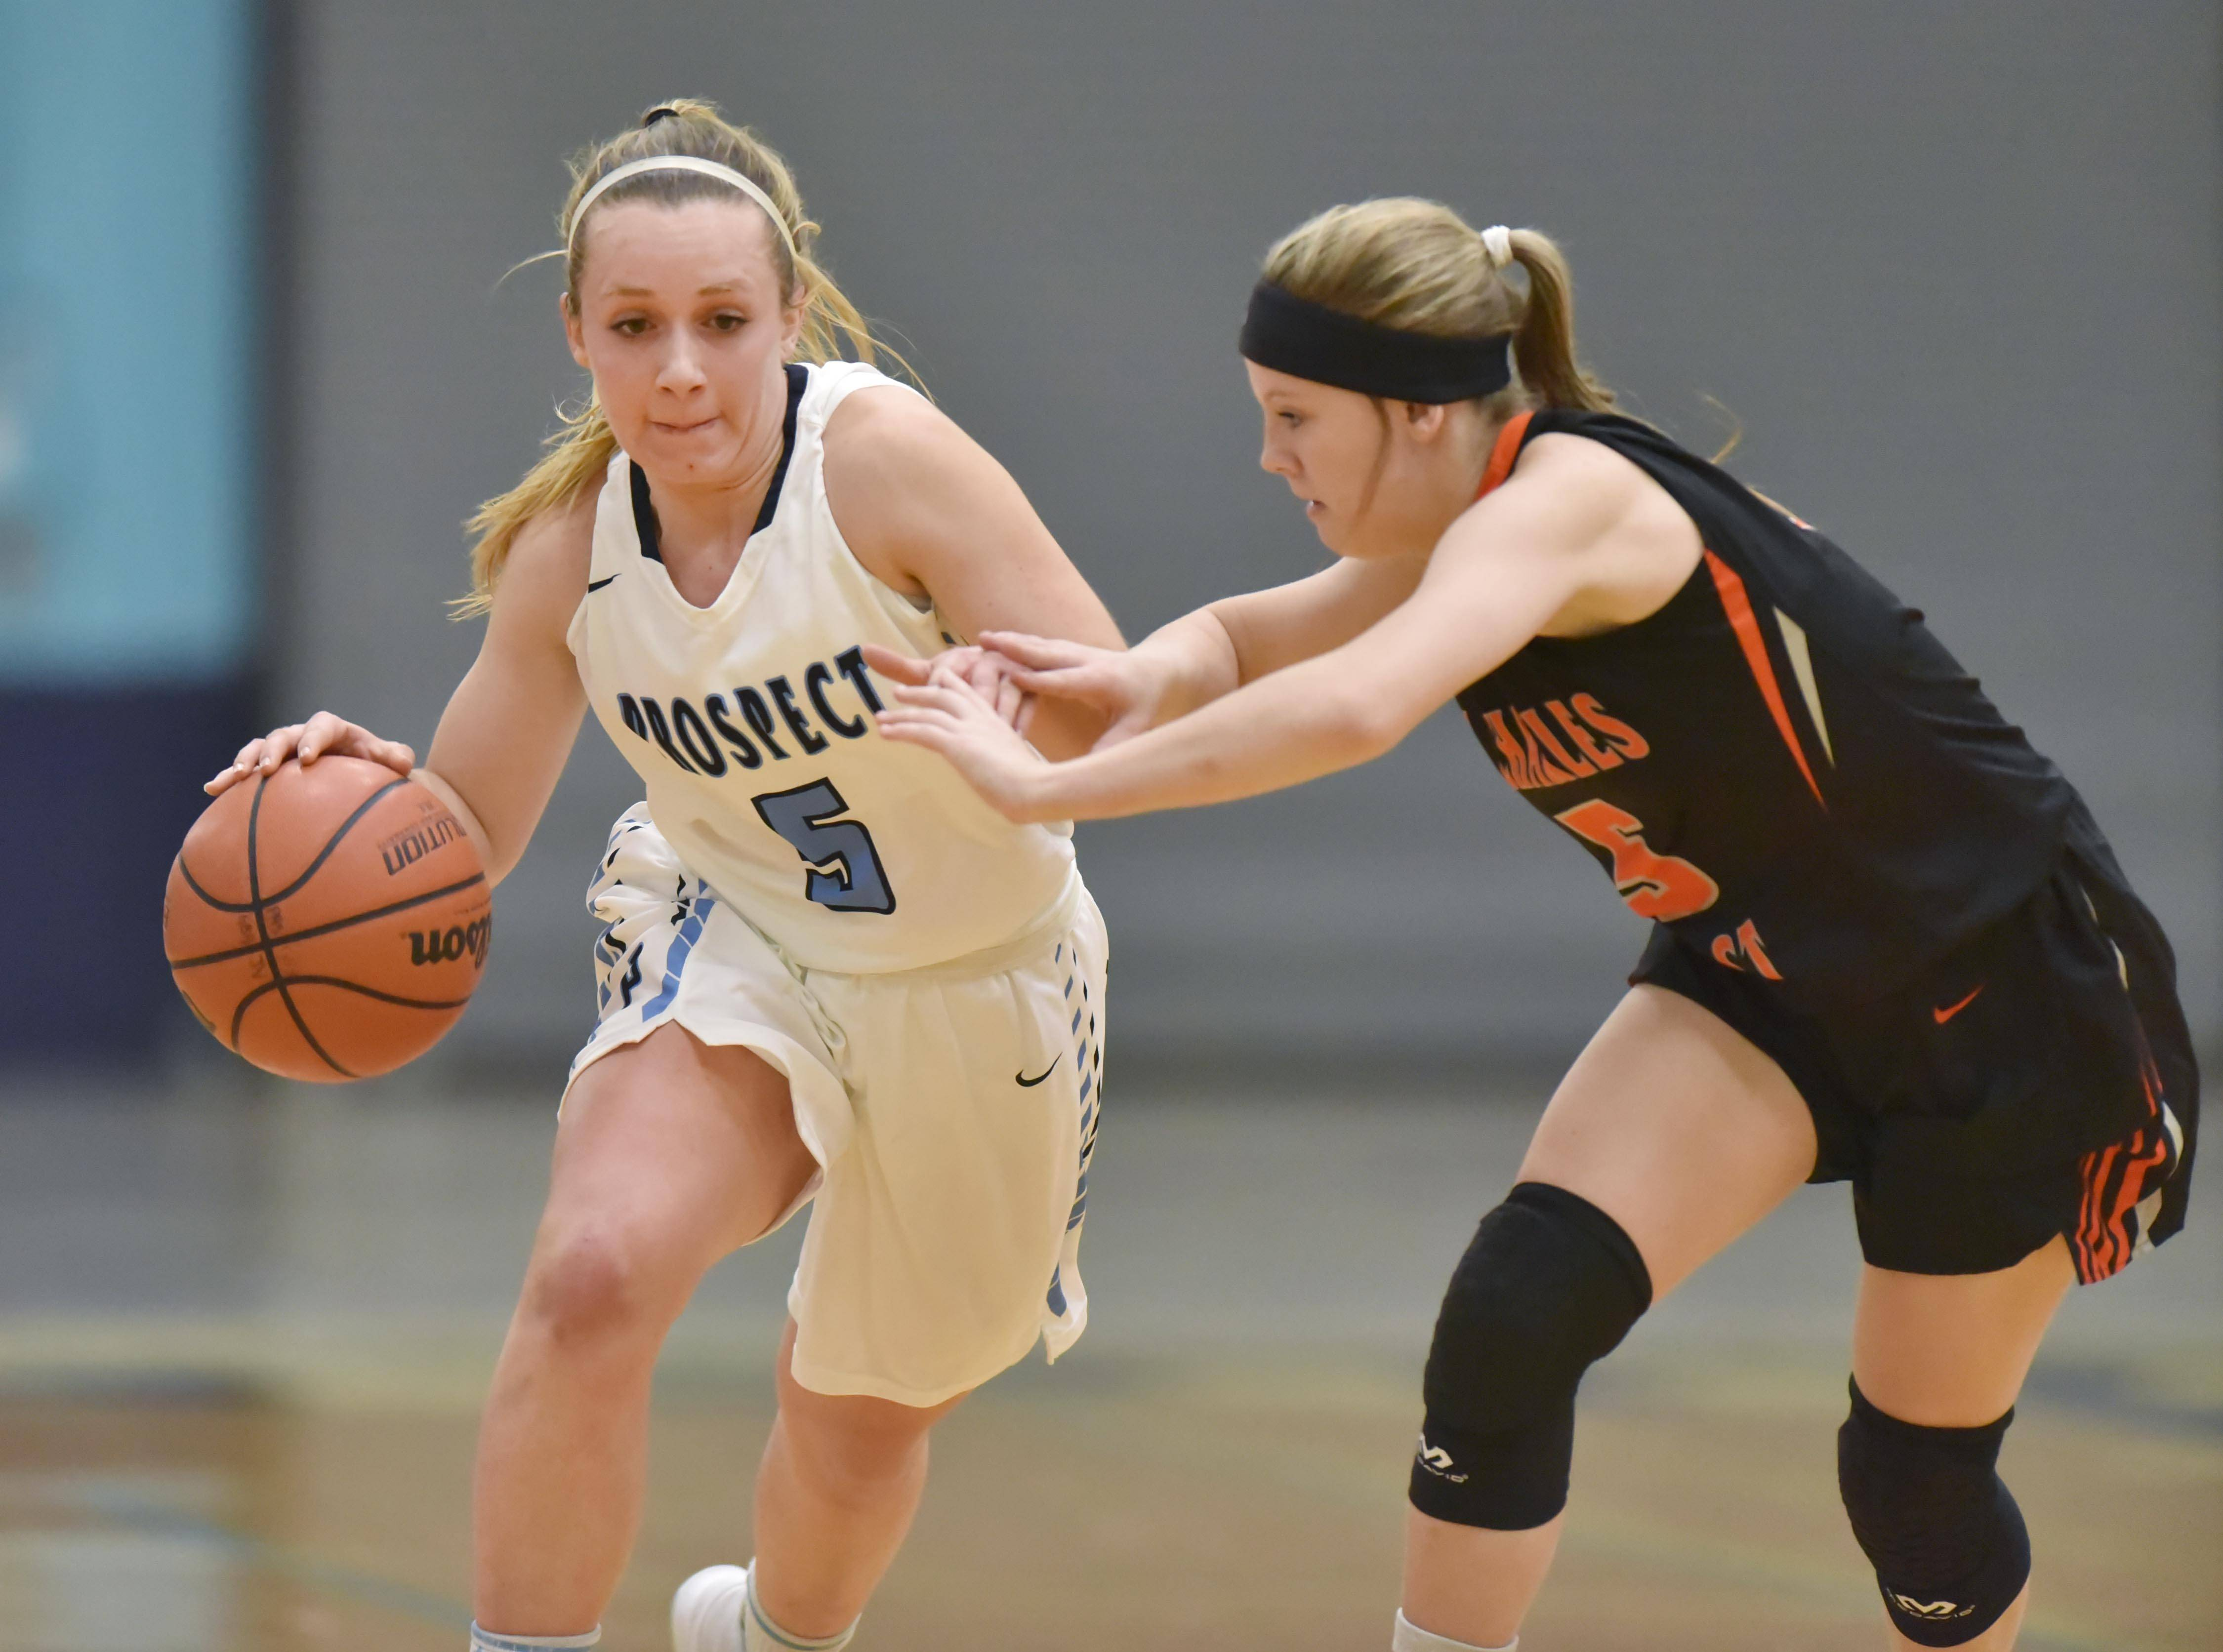 Prospect's Helen Siavelis dribbles up court against St. Charles East's Leah Griffin Wednesday in a girls basketball game in Mount Prospect.